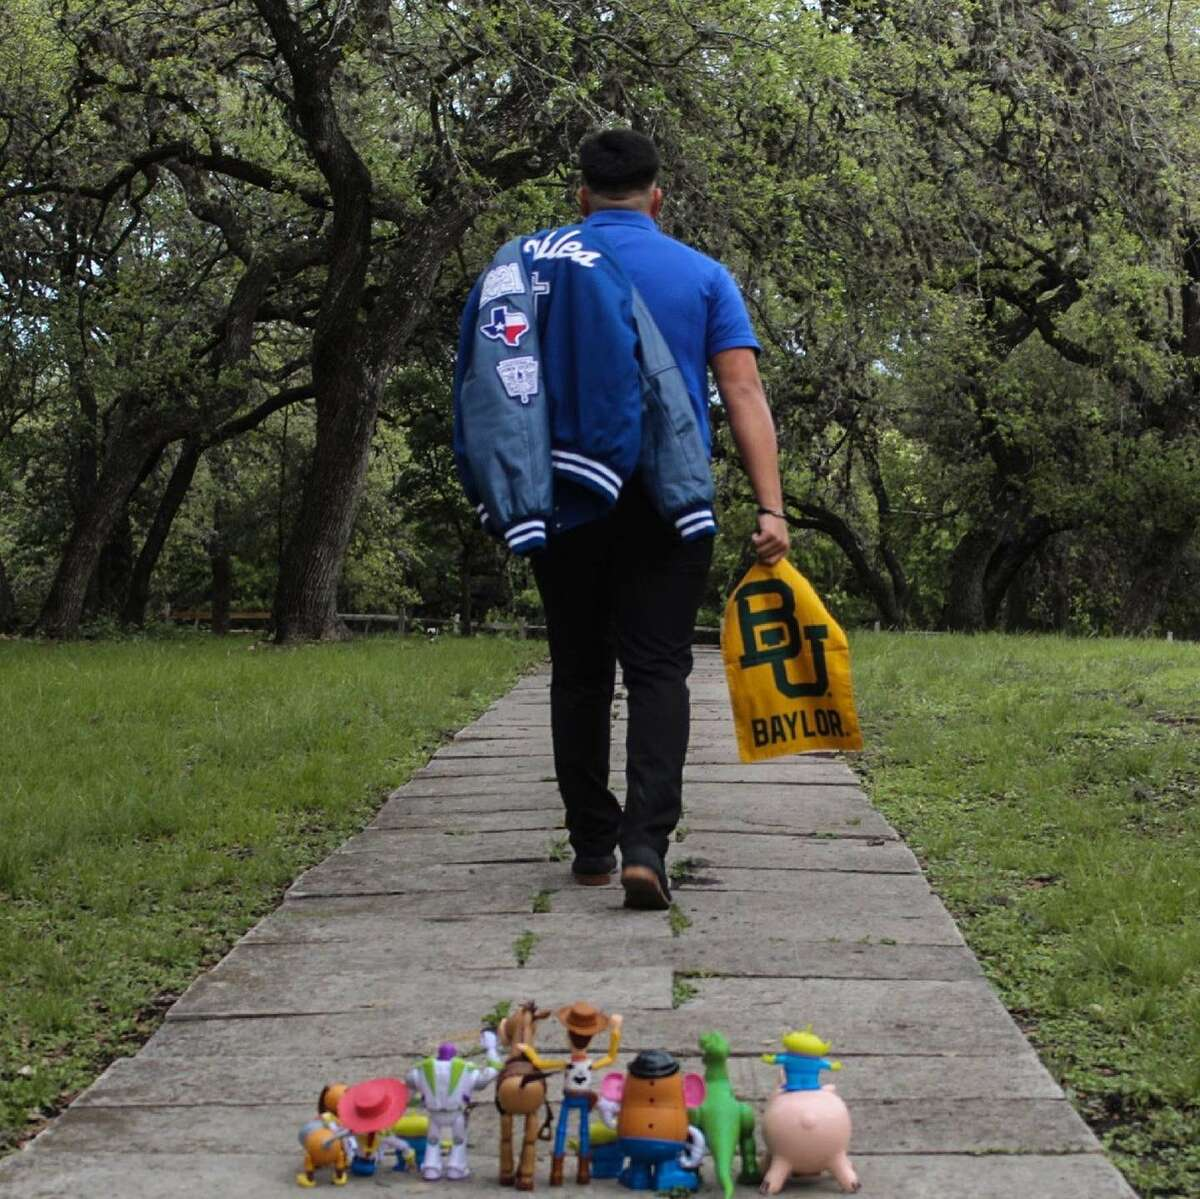 Somerset graduate Josiah Robles decided to mark the end of his high school career - and celebrate his moving on to college - with an emotional photo inspired by Toy Story.